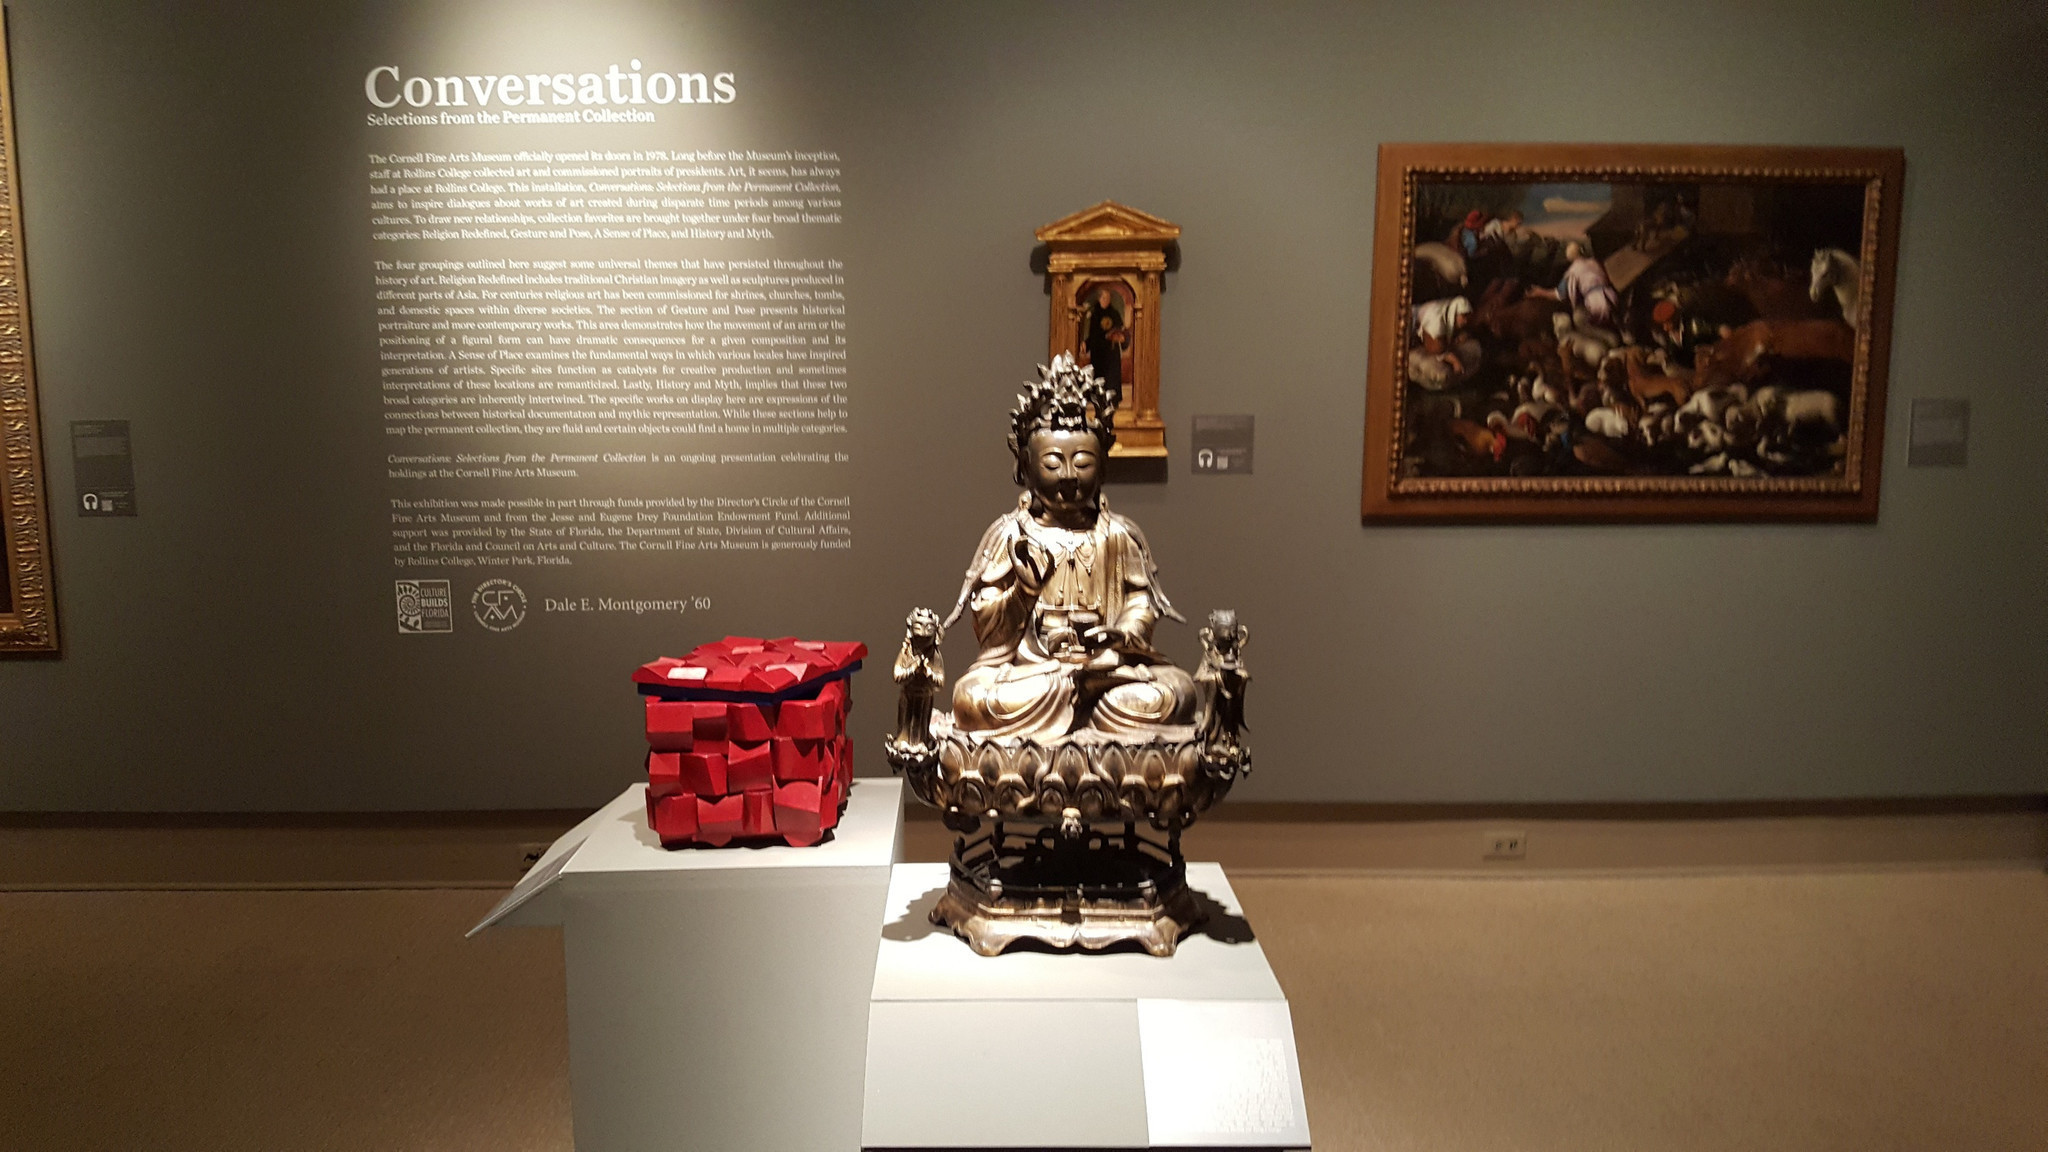 Morning adventures at the Cornell, Morse and Polasek museums in ...